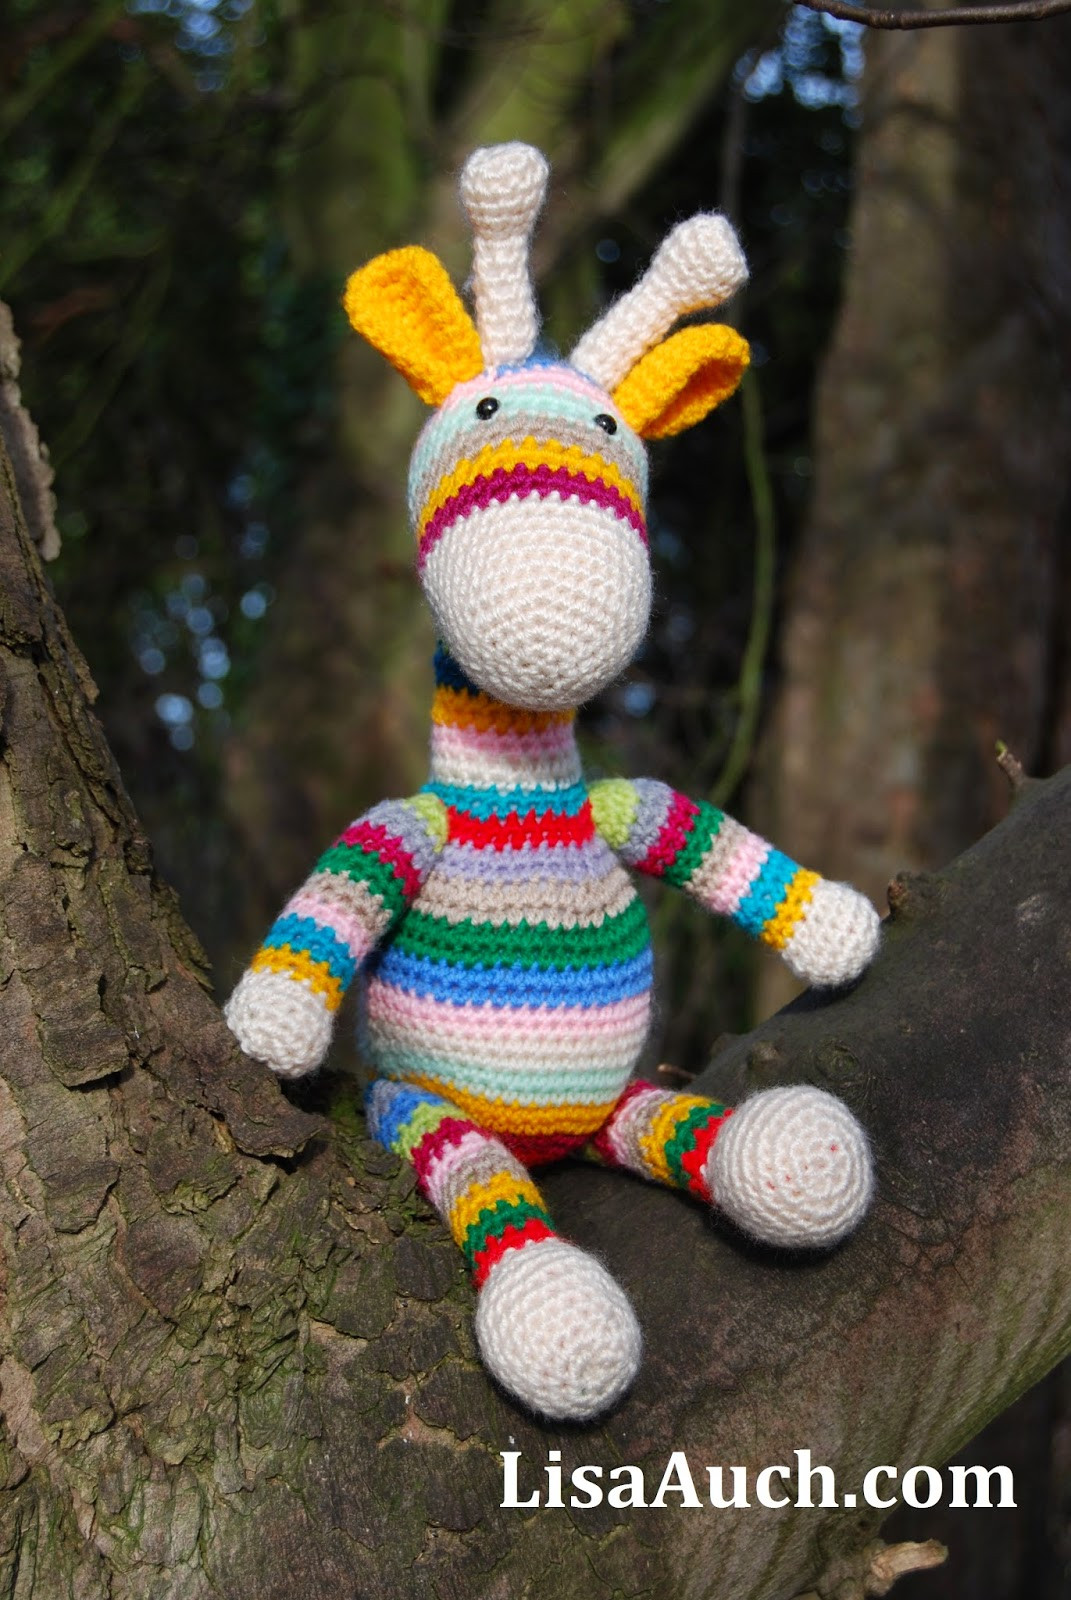 Crochet Baby toys New Free Crochet Patterns for Giraffe and Giraffe themed Of Great 46 Photos Crochet Baby toys